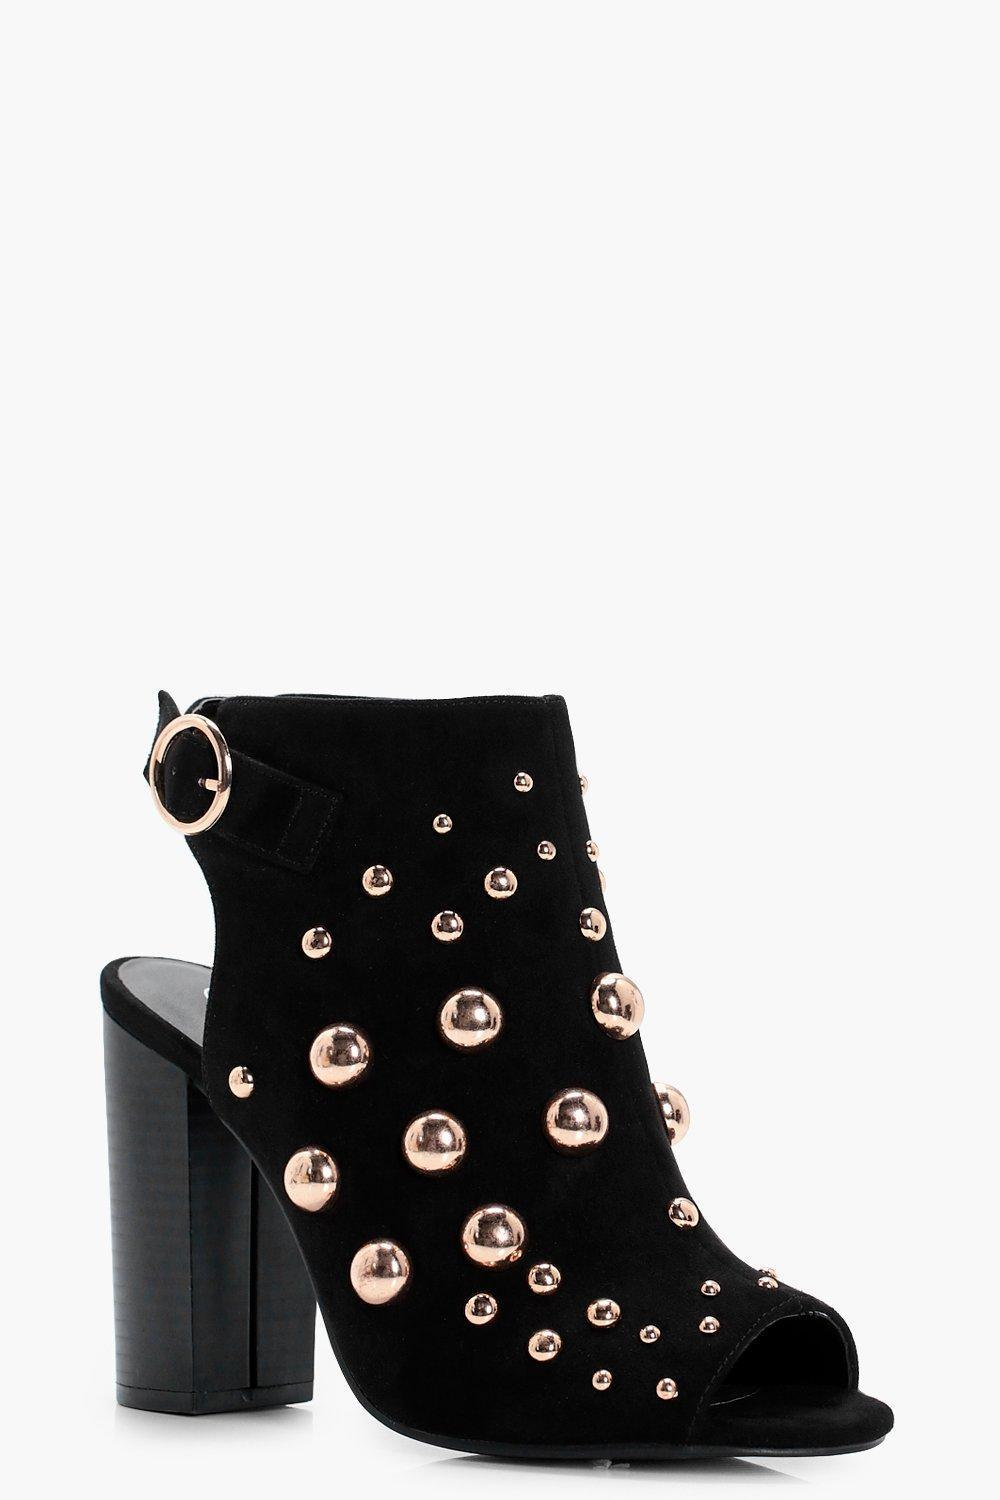 関送込 Ivy Oversized Stud Embellished Shoe Boot ブーツ